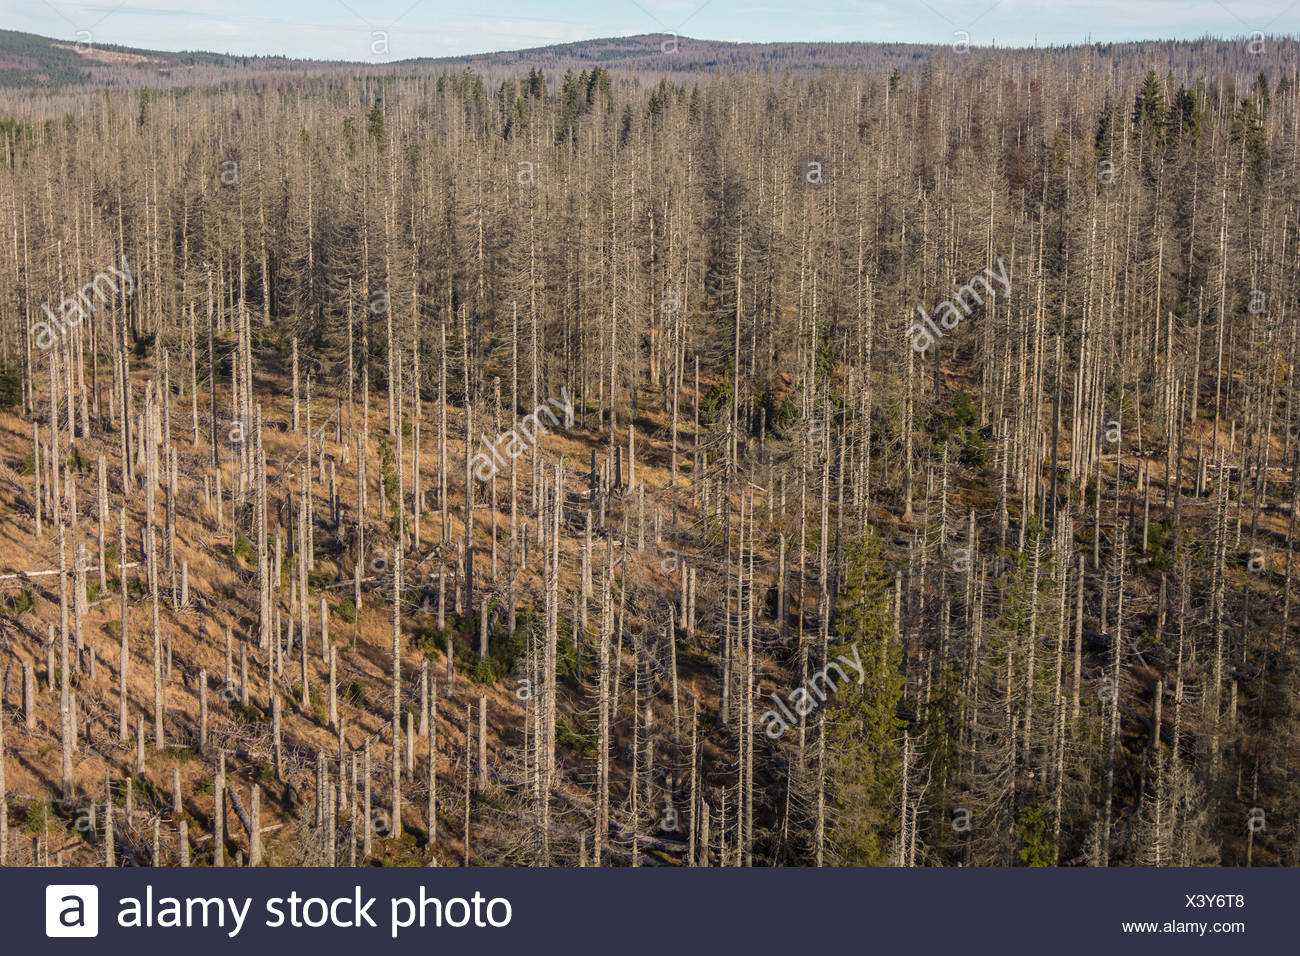 bark beetles, engraver beetles & ambrosia beetles, timber beetles (Scolytidae (Ipidae)), aerial view to spruce forest damaged by bark beetles, Czech Republic, Boehmerwald, Sumava Nationalpark - Stock Image